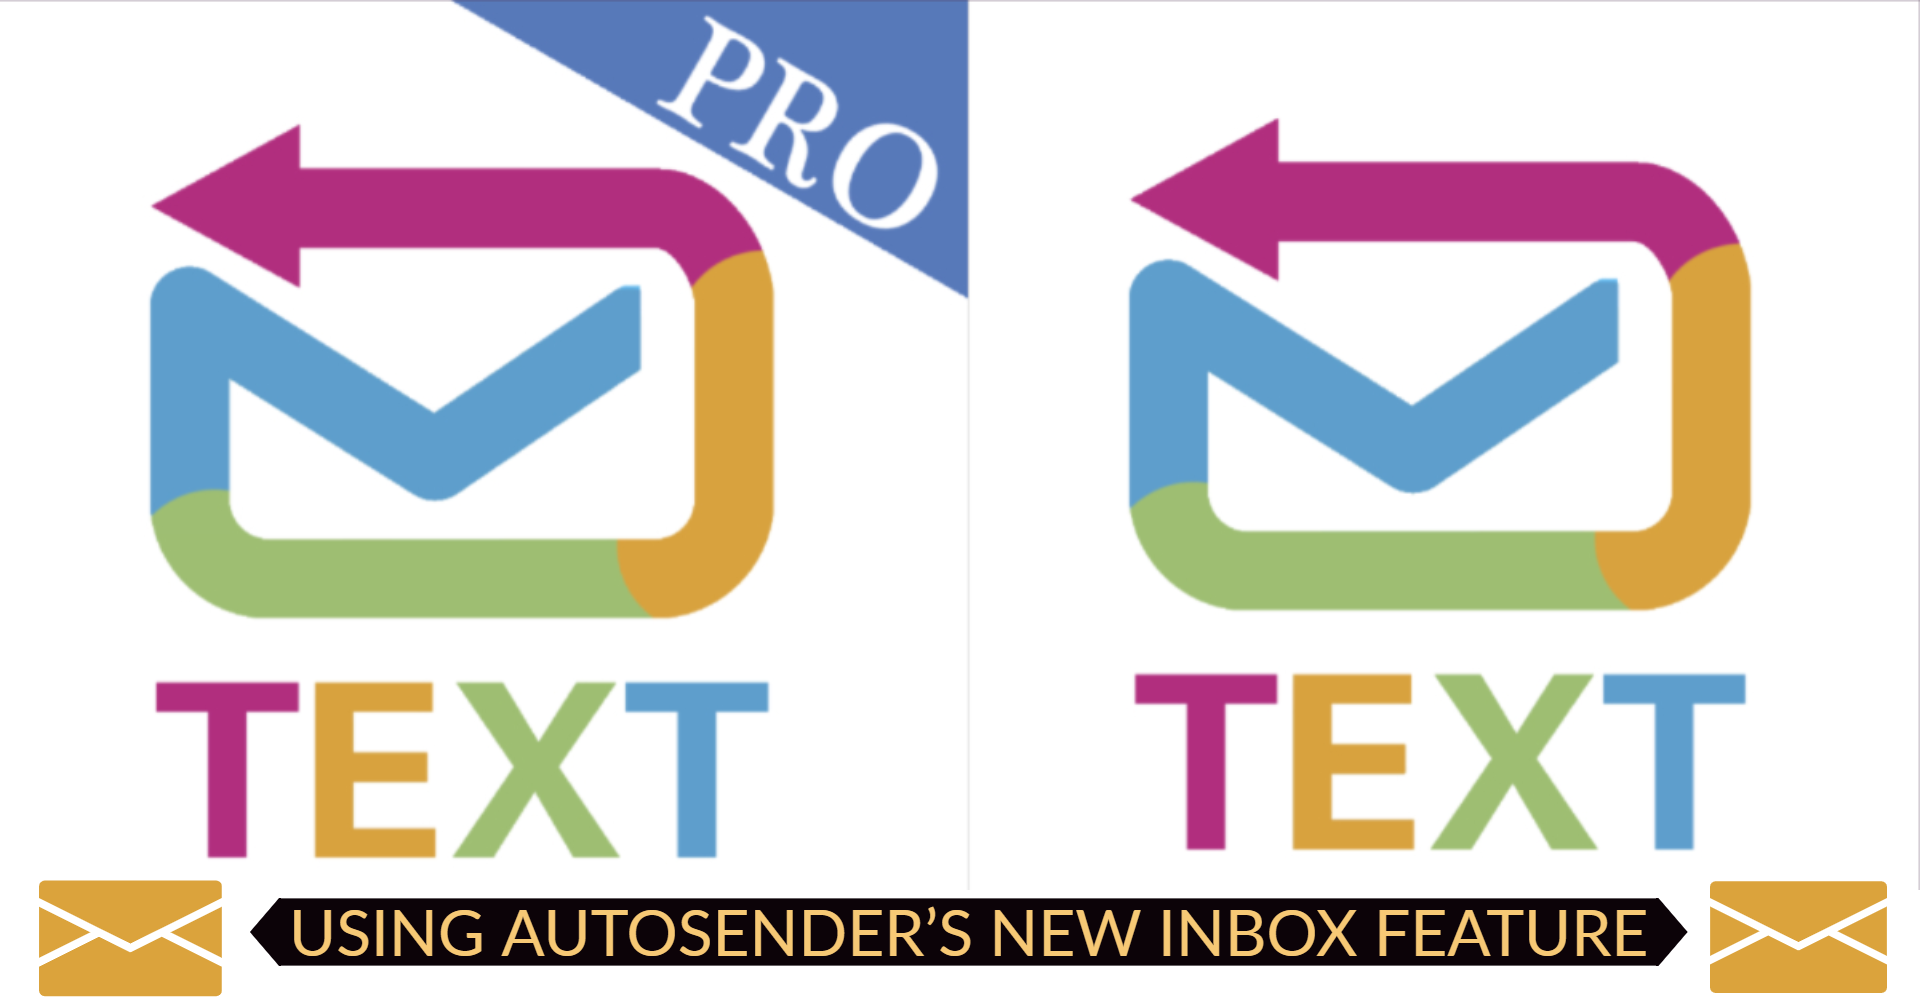 Cover Photo Using AutoSender Pro Inbox feature